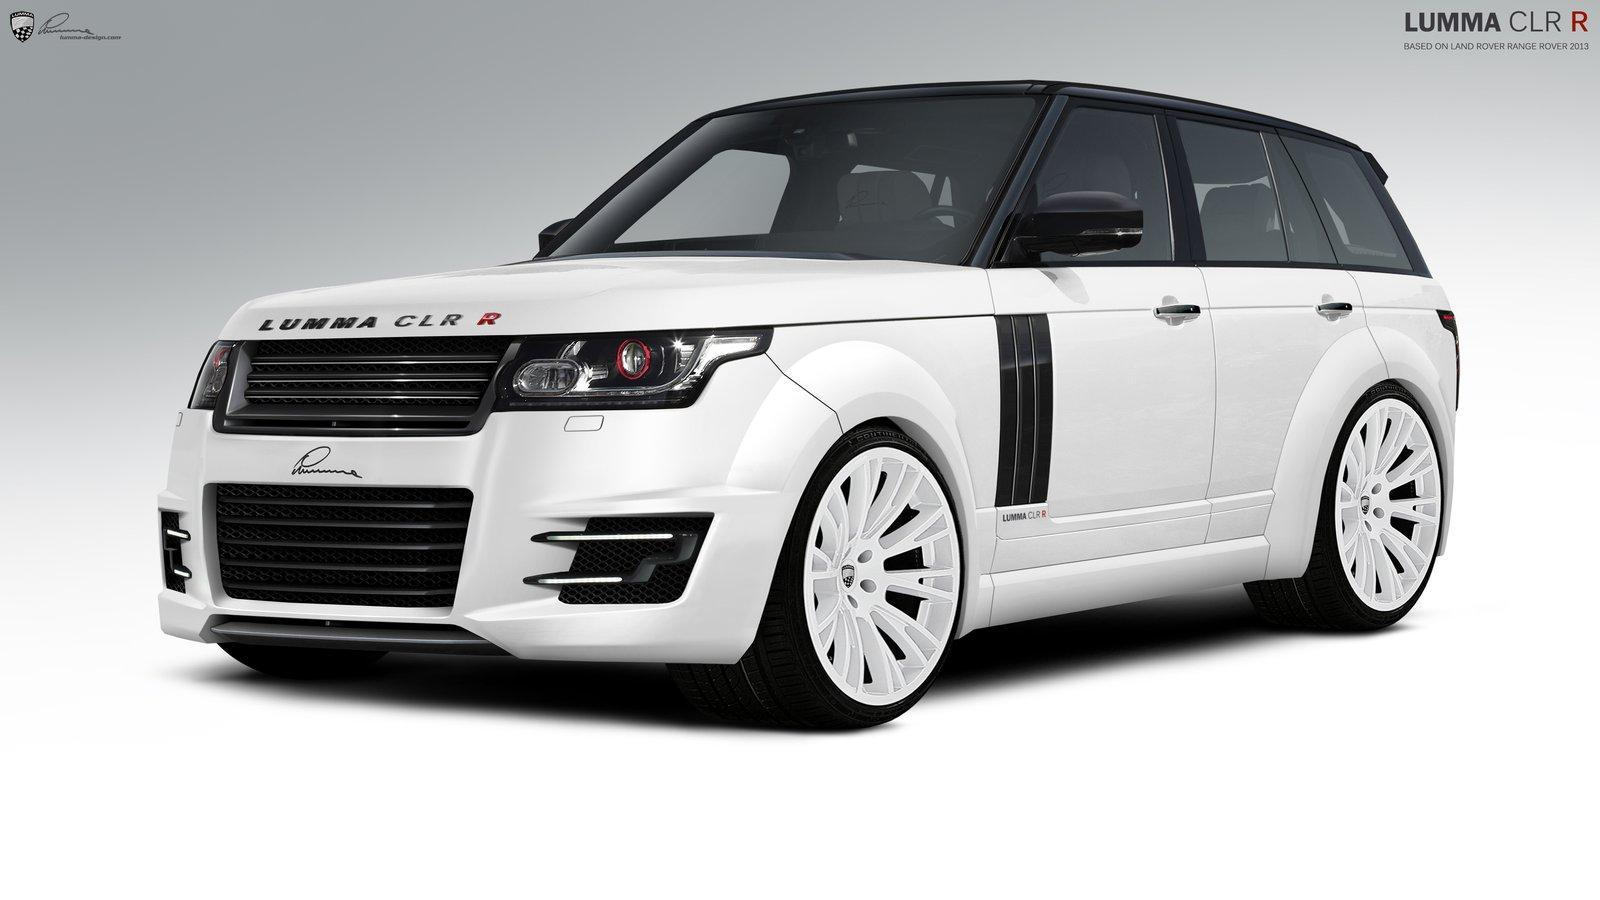 lumma design boursoufle le nouveau range rover. Black Bedroom Furniture Sets. Home Design Ideas